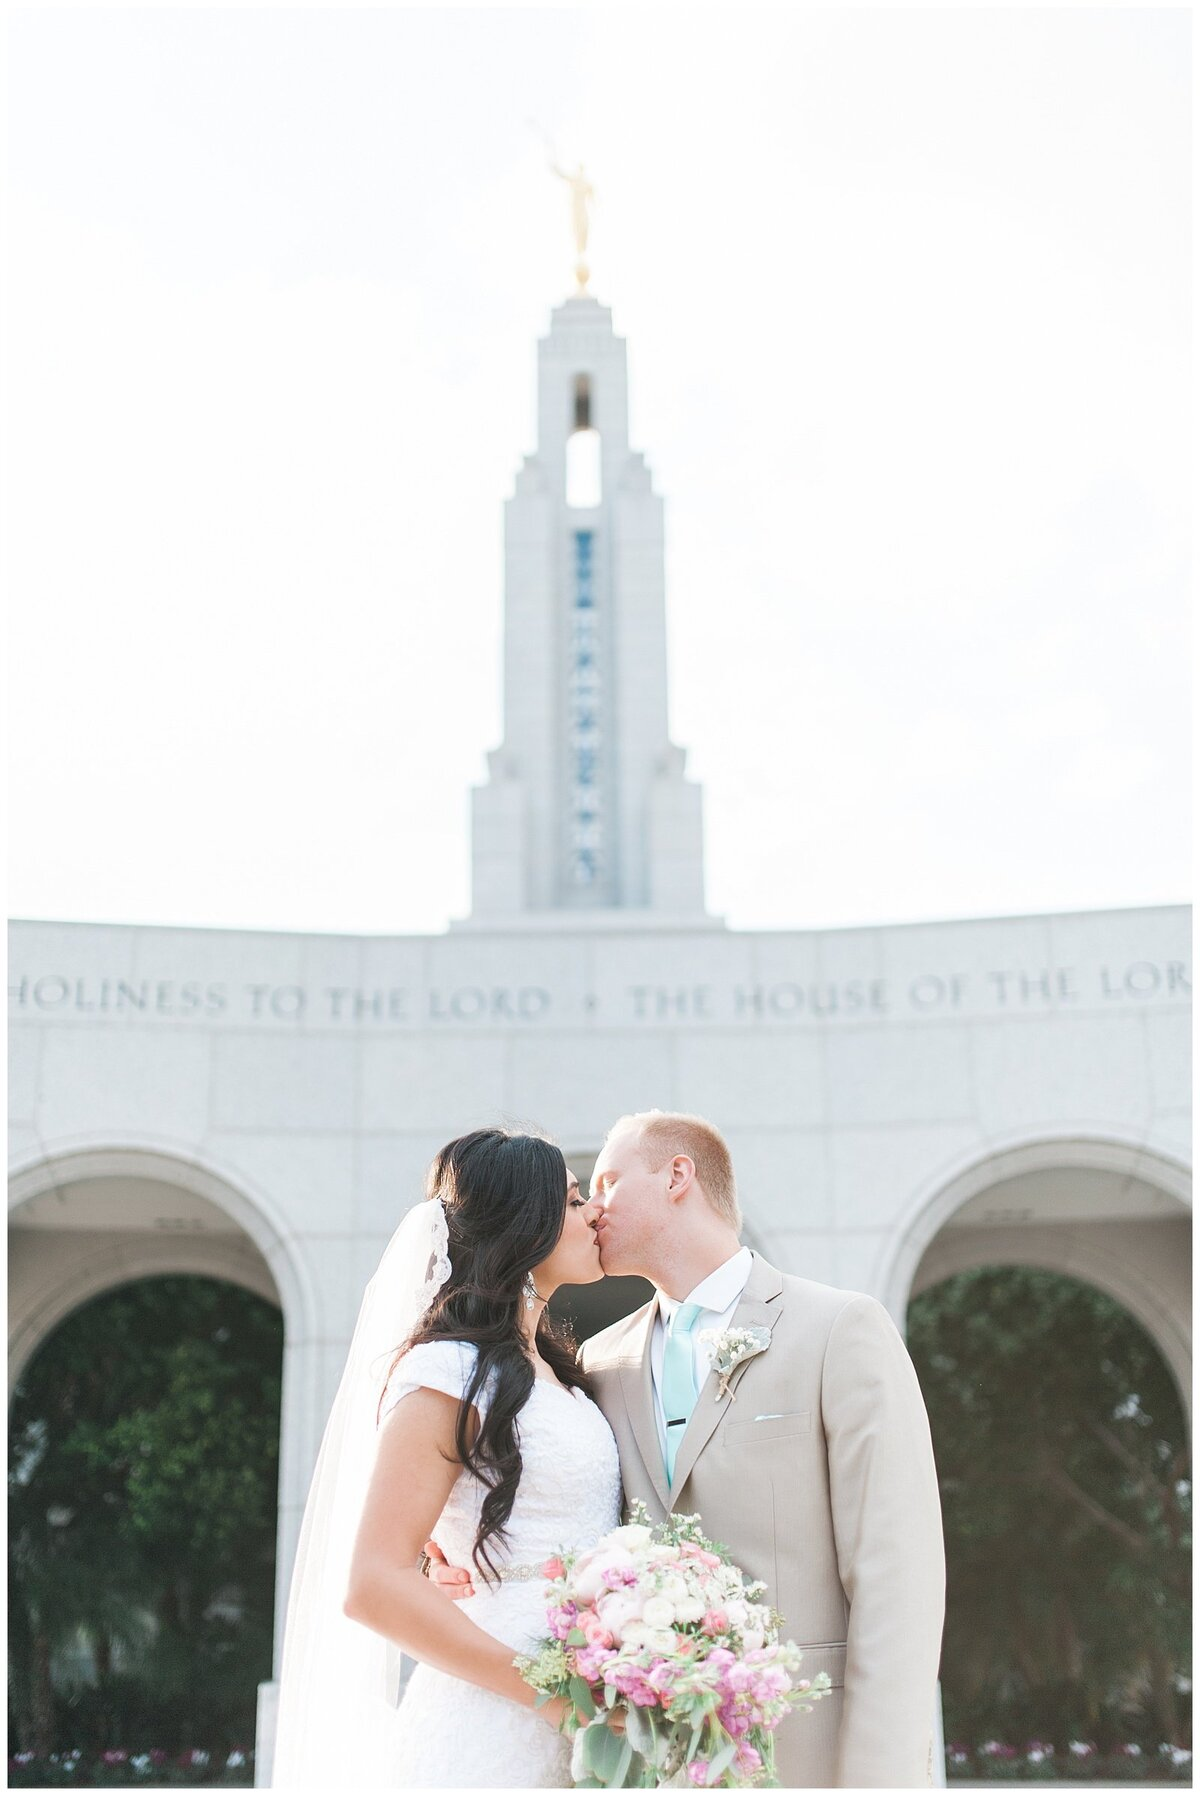 redlands temple wedding southern california photographer rancho cucamonga photos020